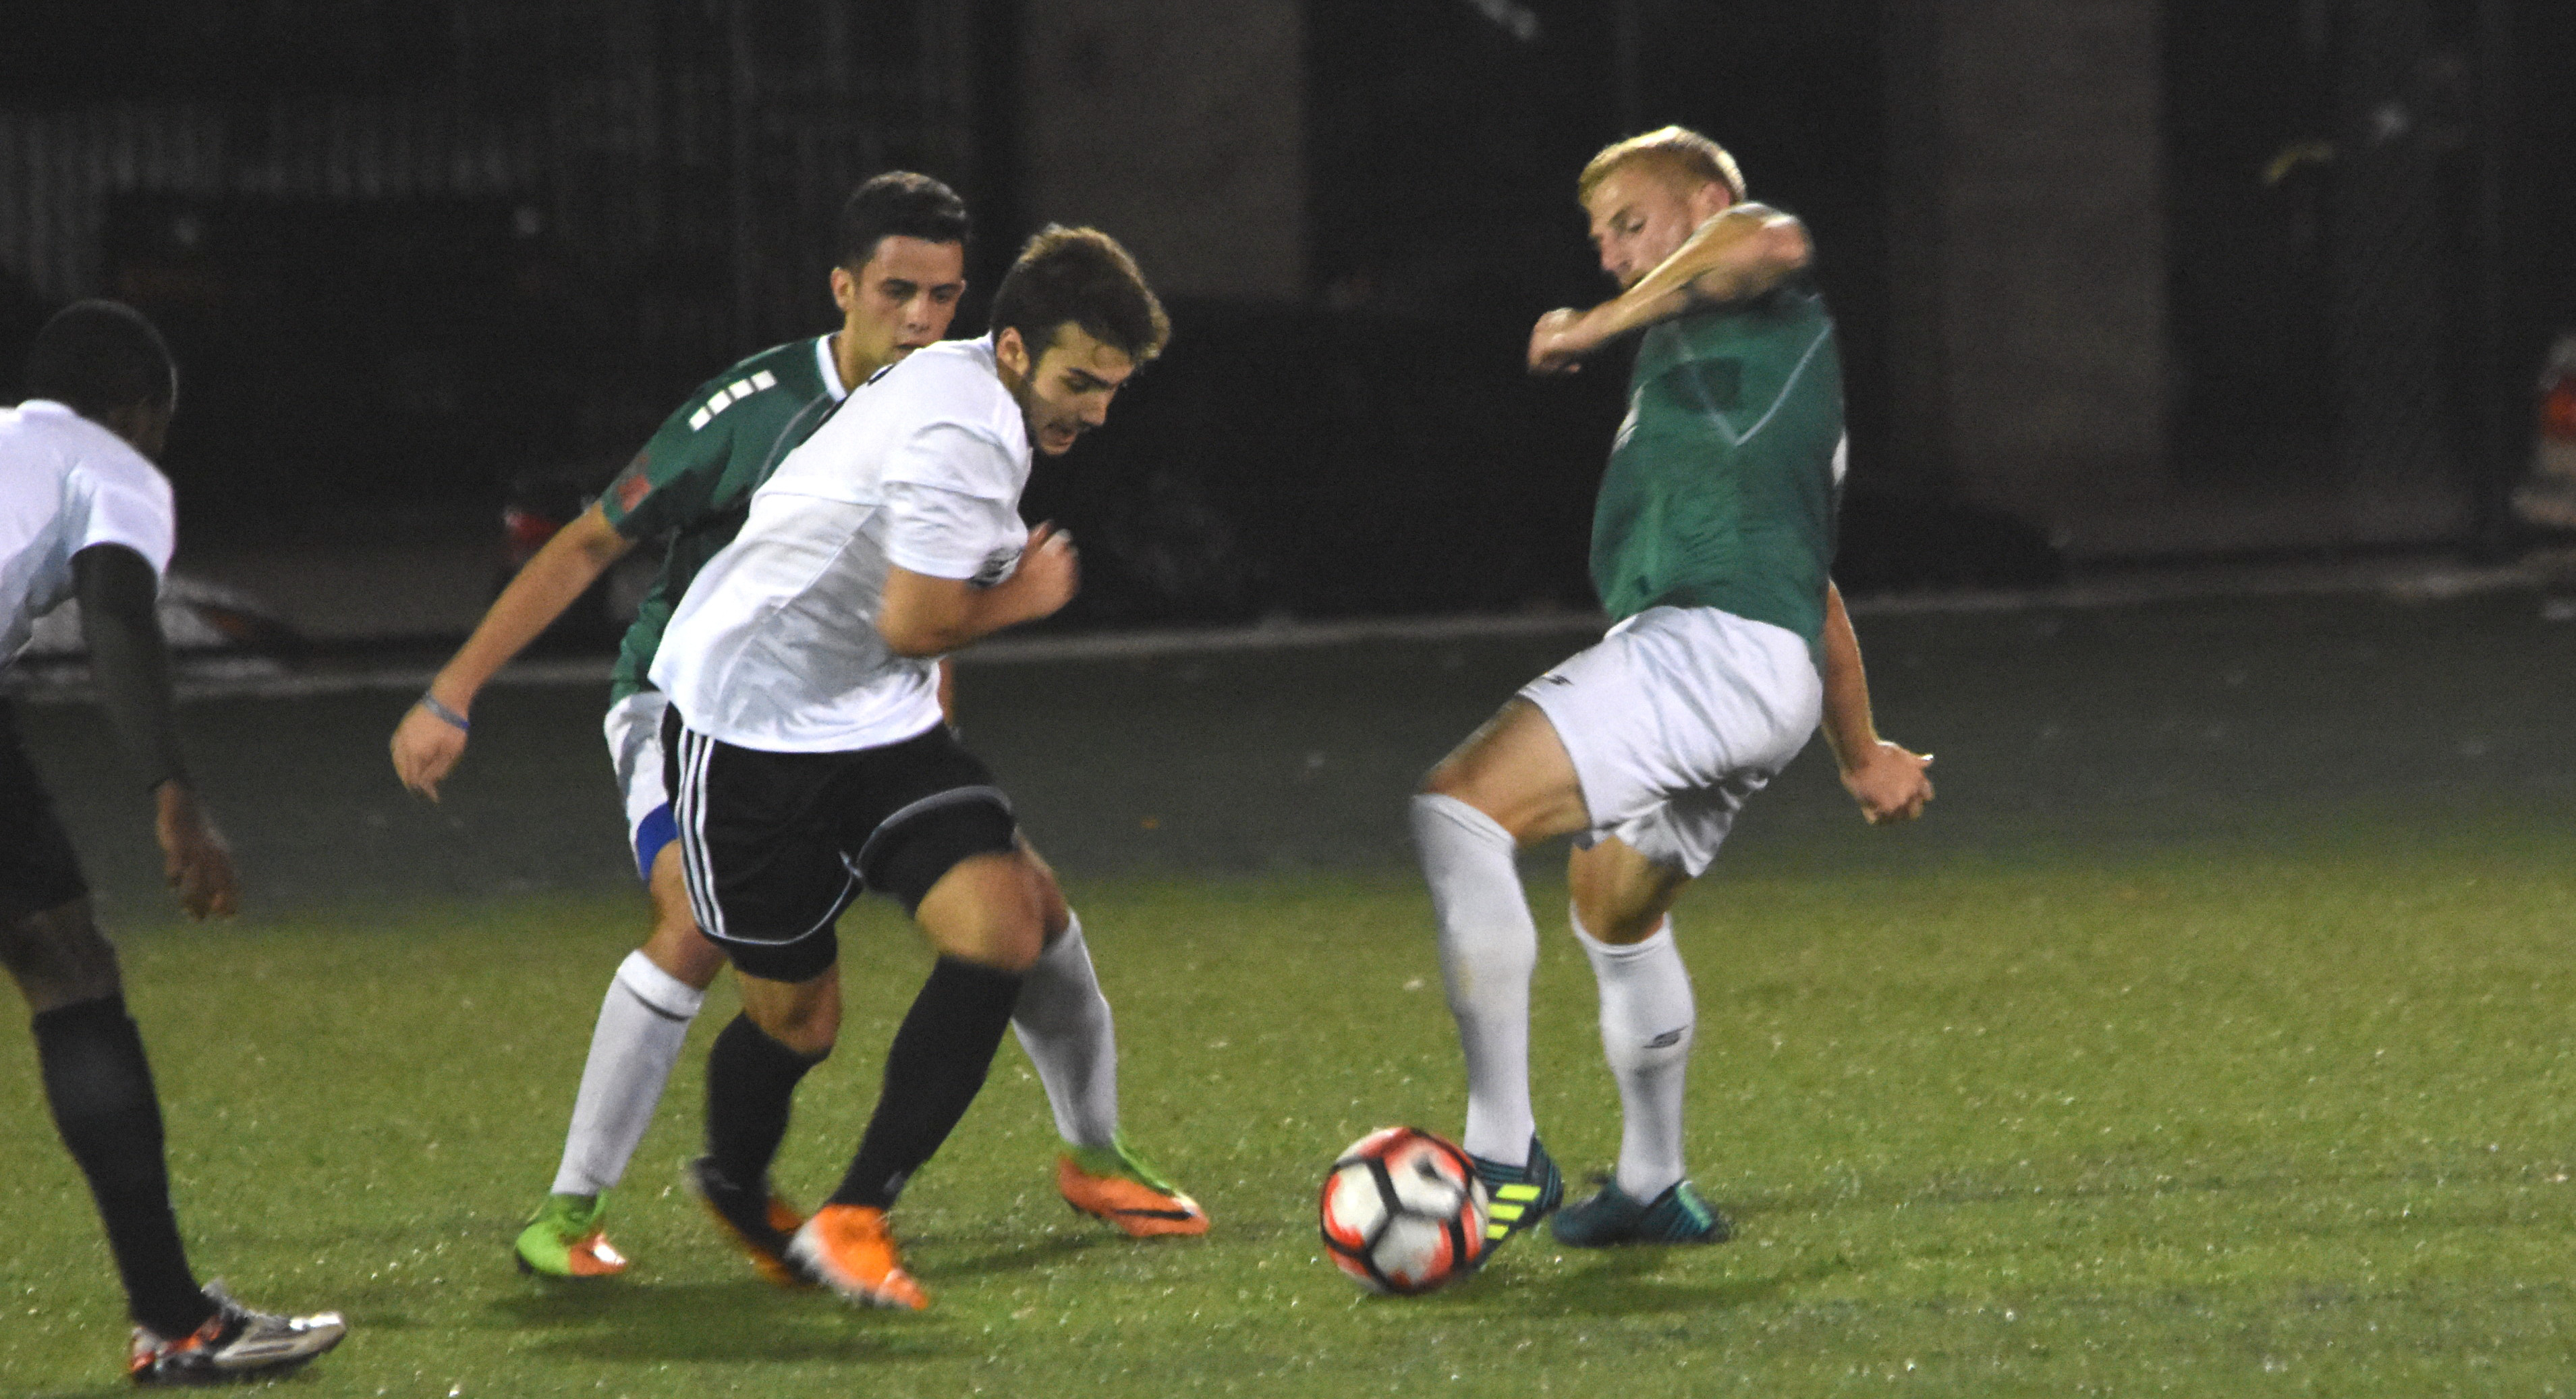 Shamrocks and Central Park split points in a 1-1 draw